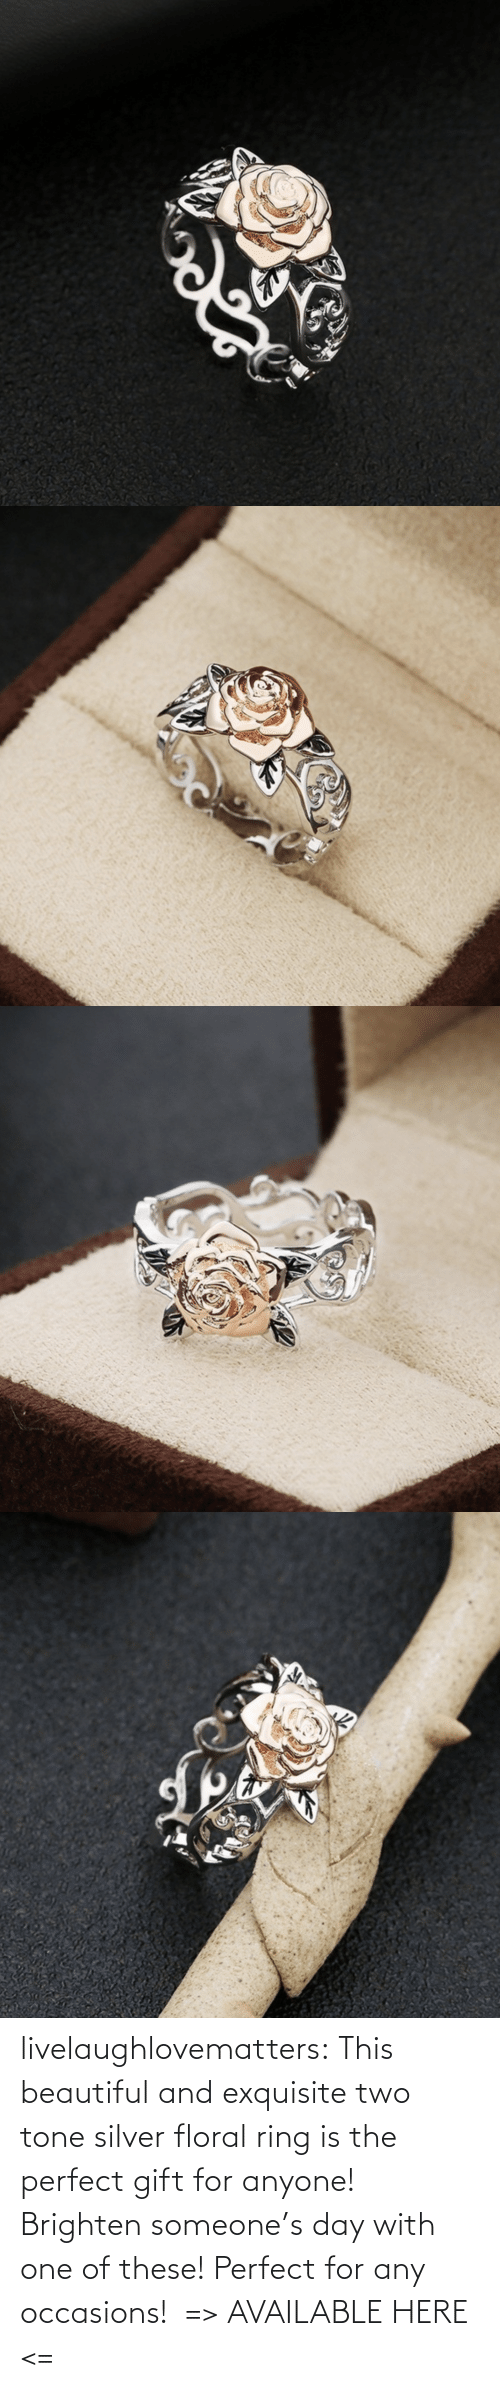 Silver: livelaughlovematters: This beautiful and exquisite two tone silver floral ring is the perfect gift for anyone! Brighten someone's day with one of these! Perfect for any occasions!  => AVAILABLE HERE <=